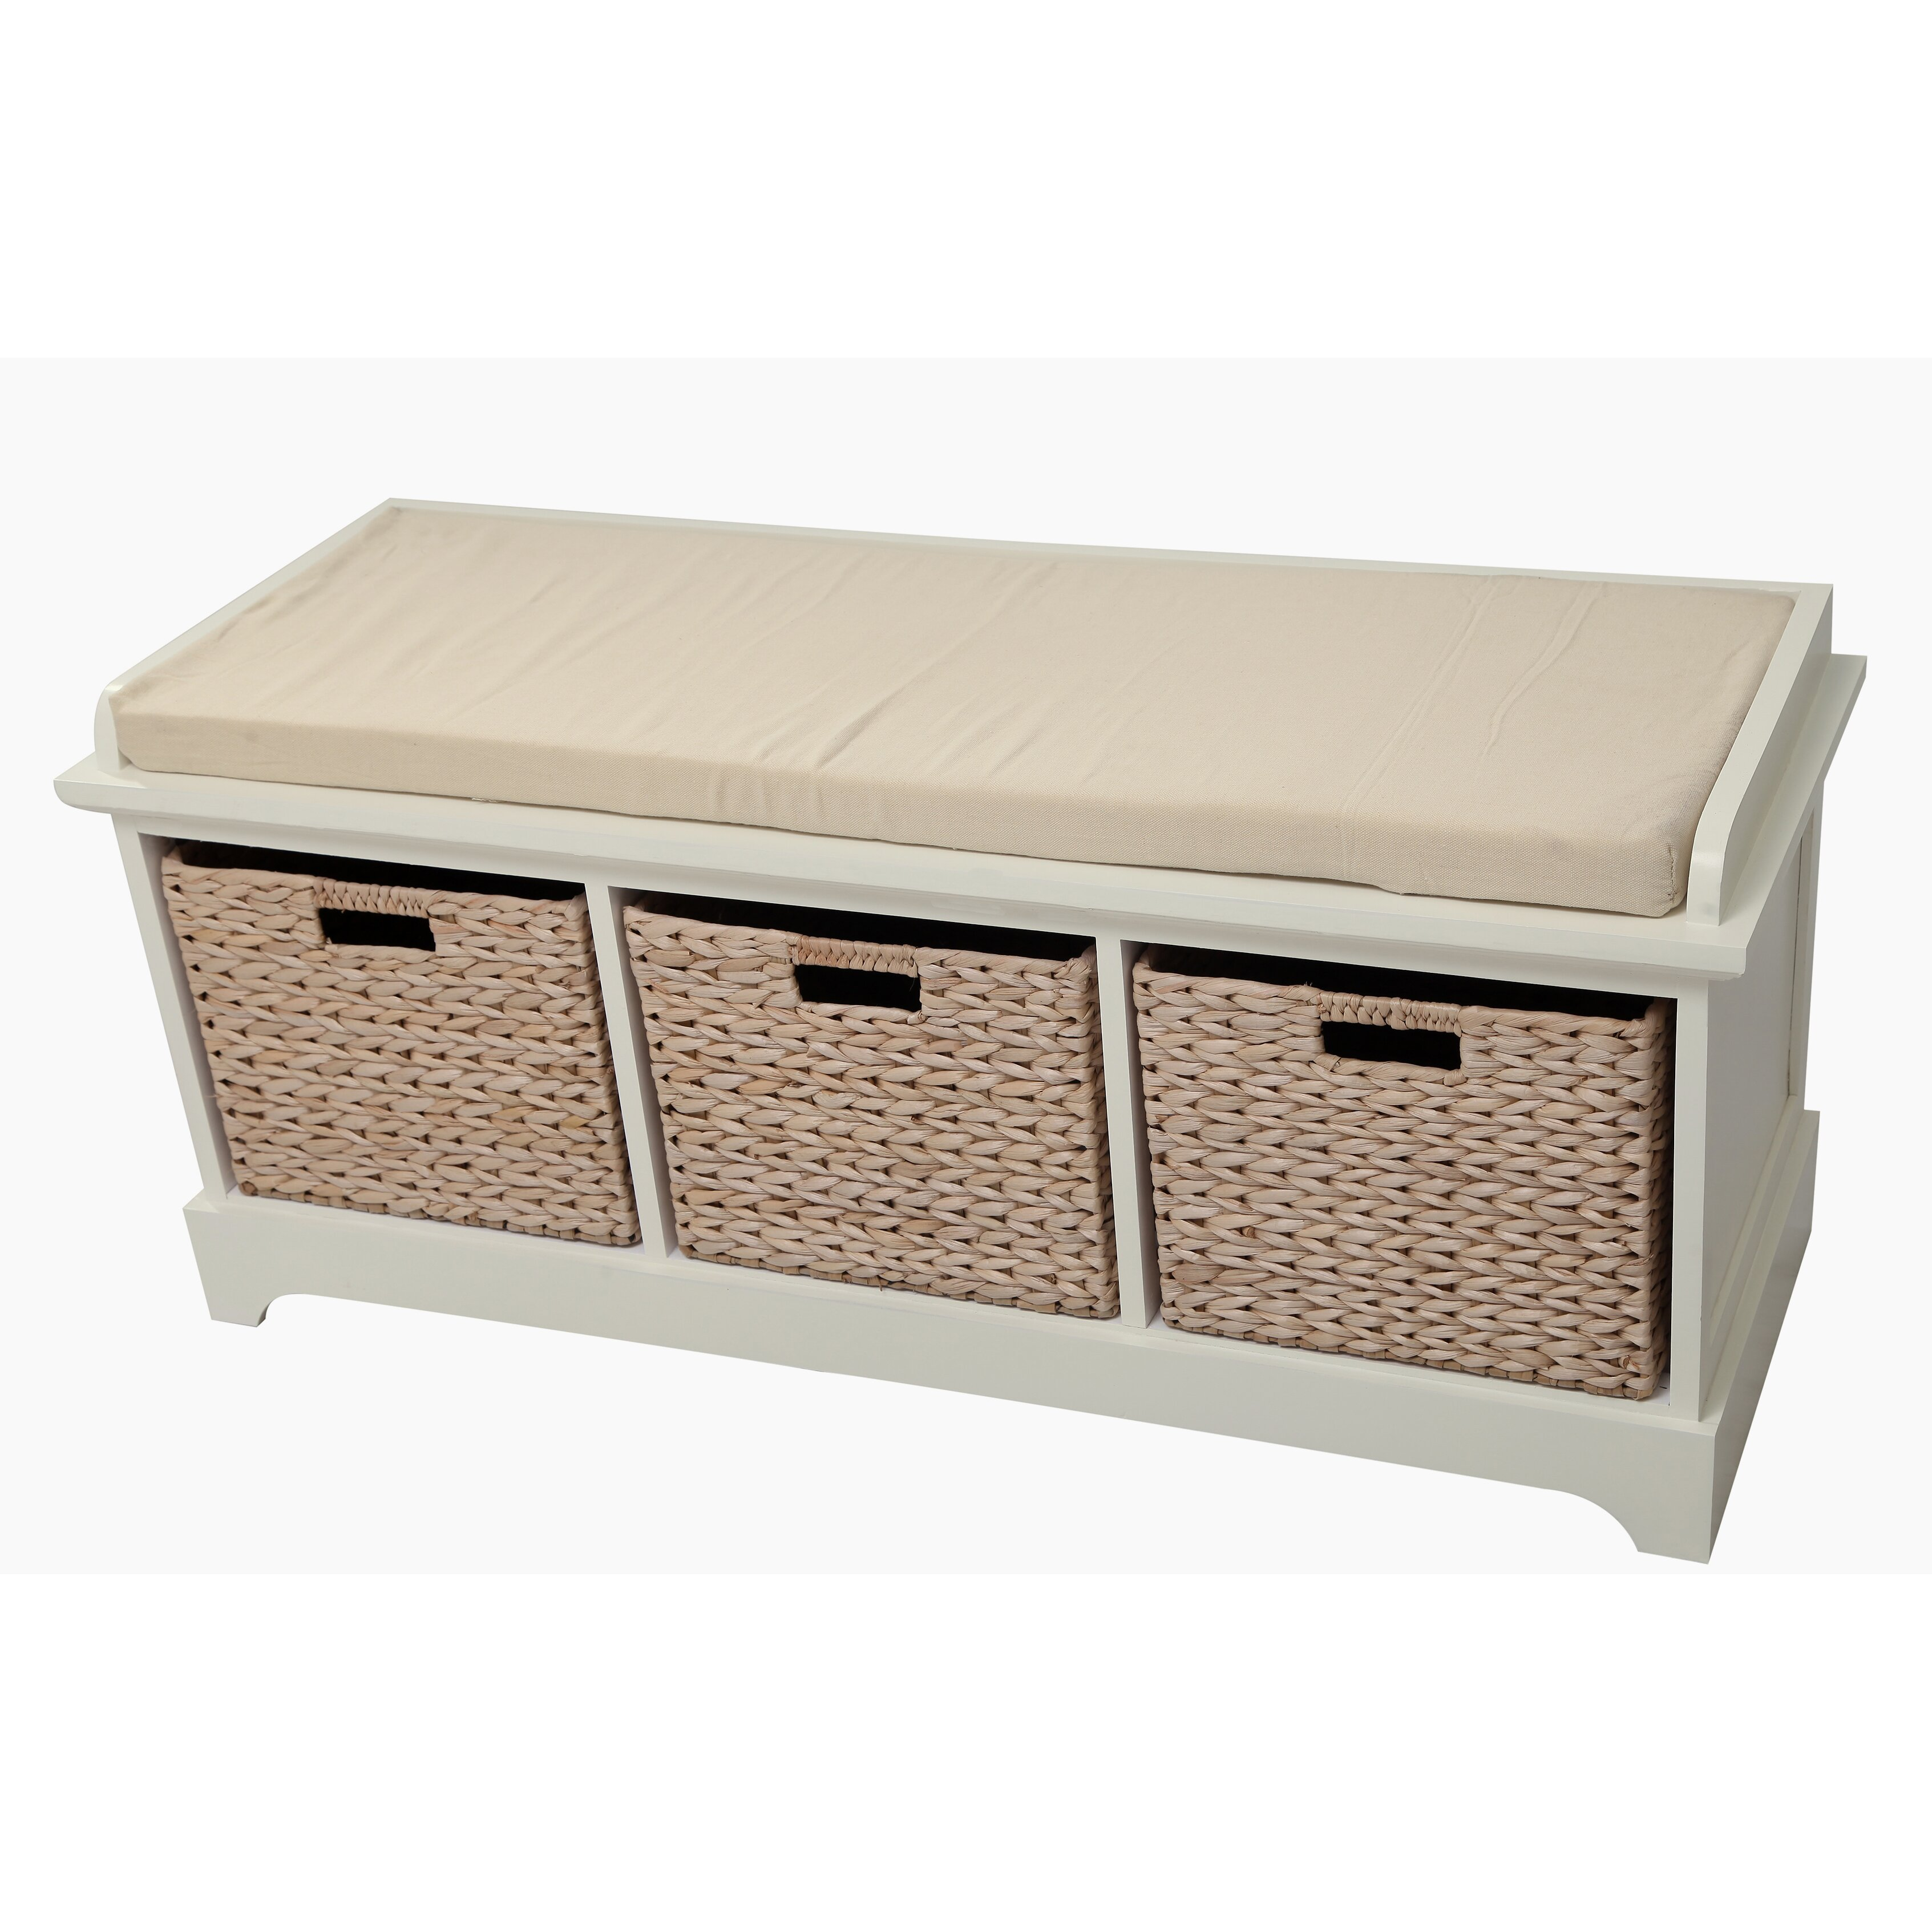 Patio wall decorations - Gallerie Decor Newport Wooden Bedroom Storage Bench With 3